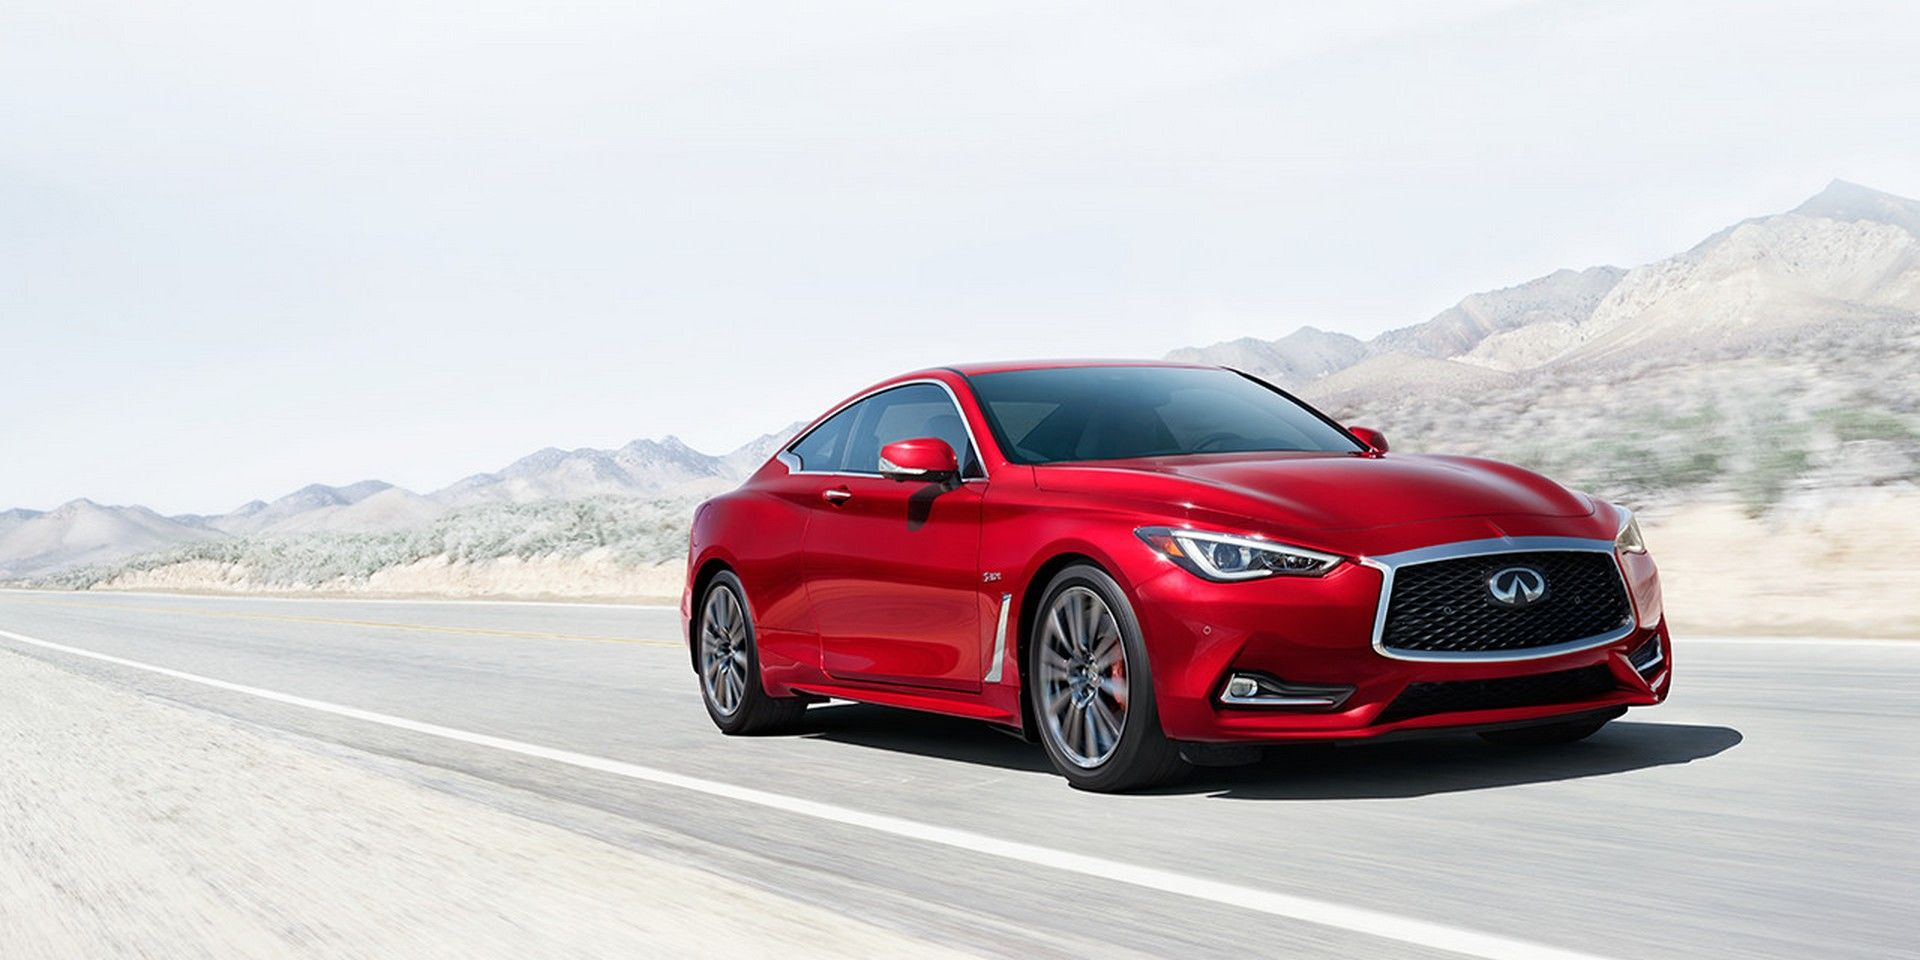 2019 infiniti g37 coupe horsepower review specs price